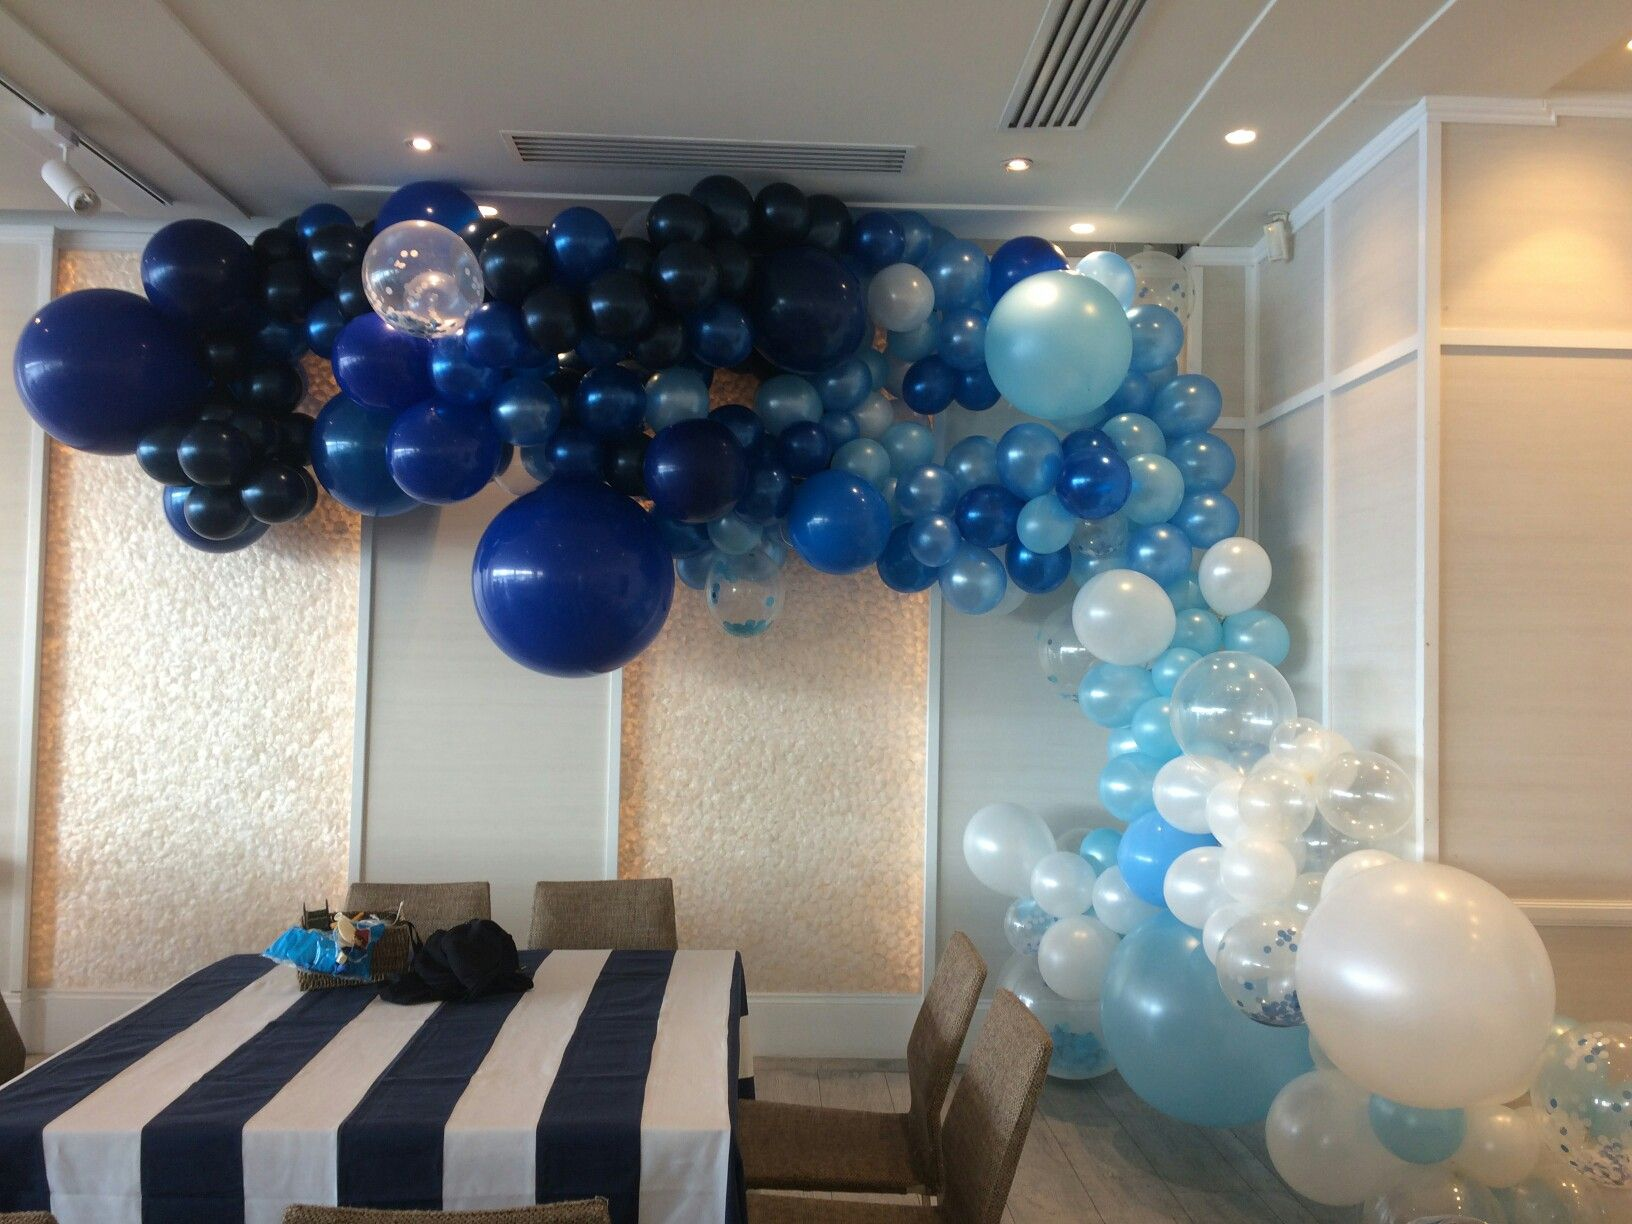 Organic balloon garland in ocean colours themes this wall